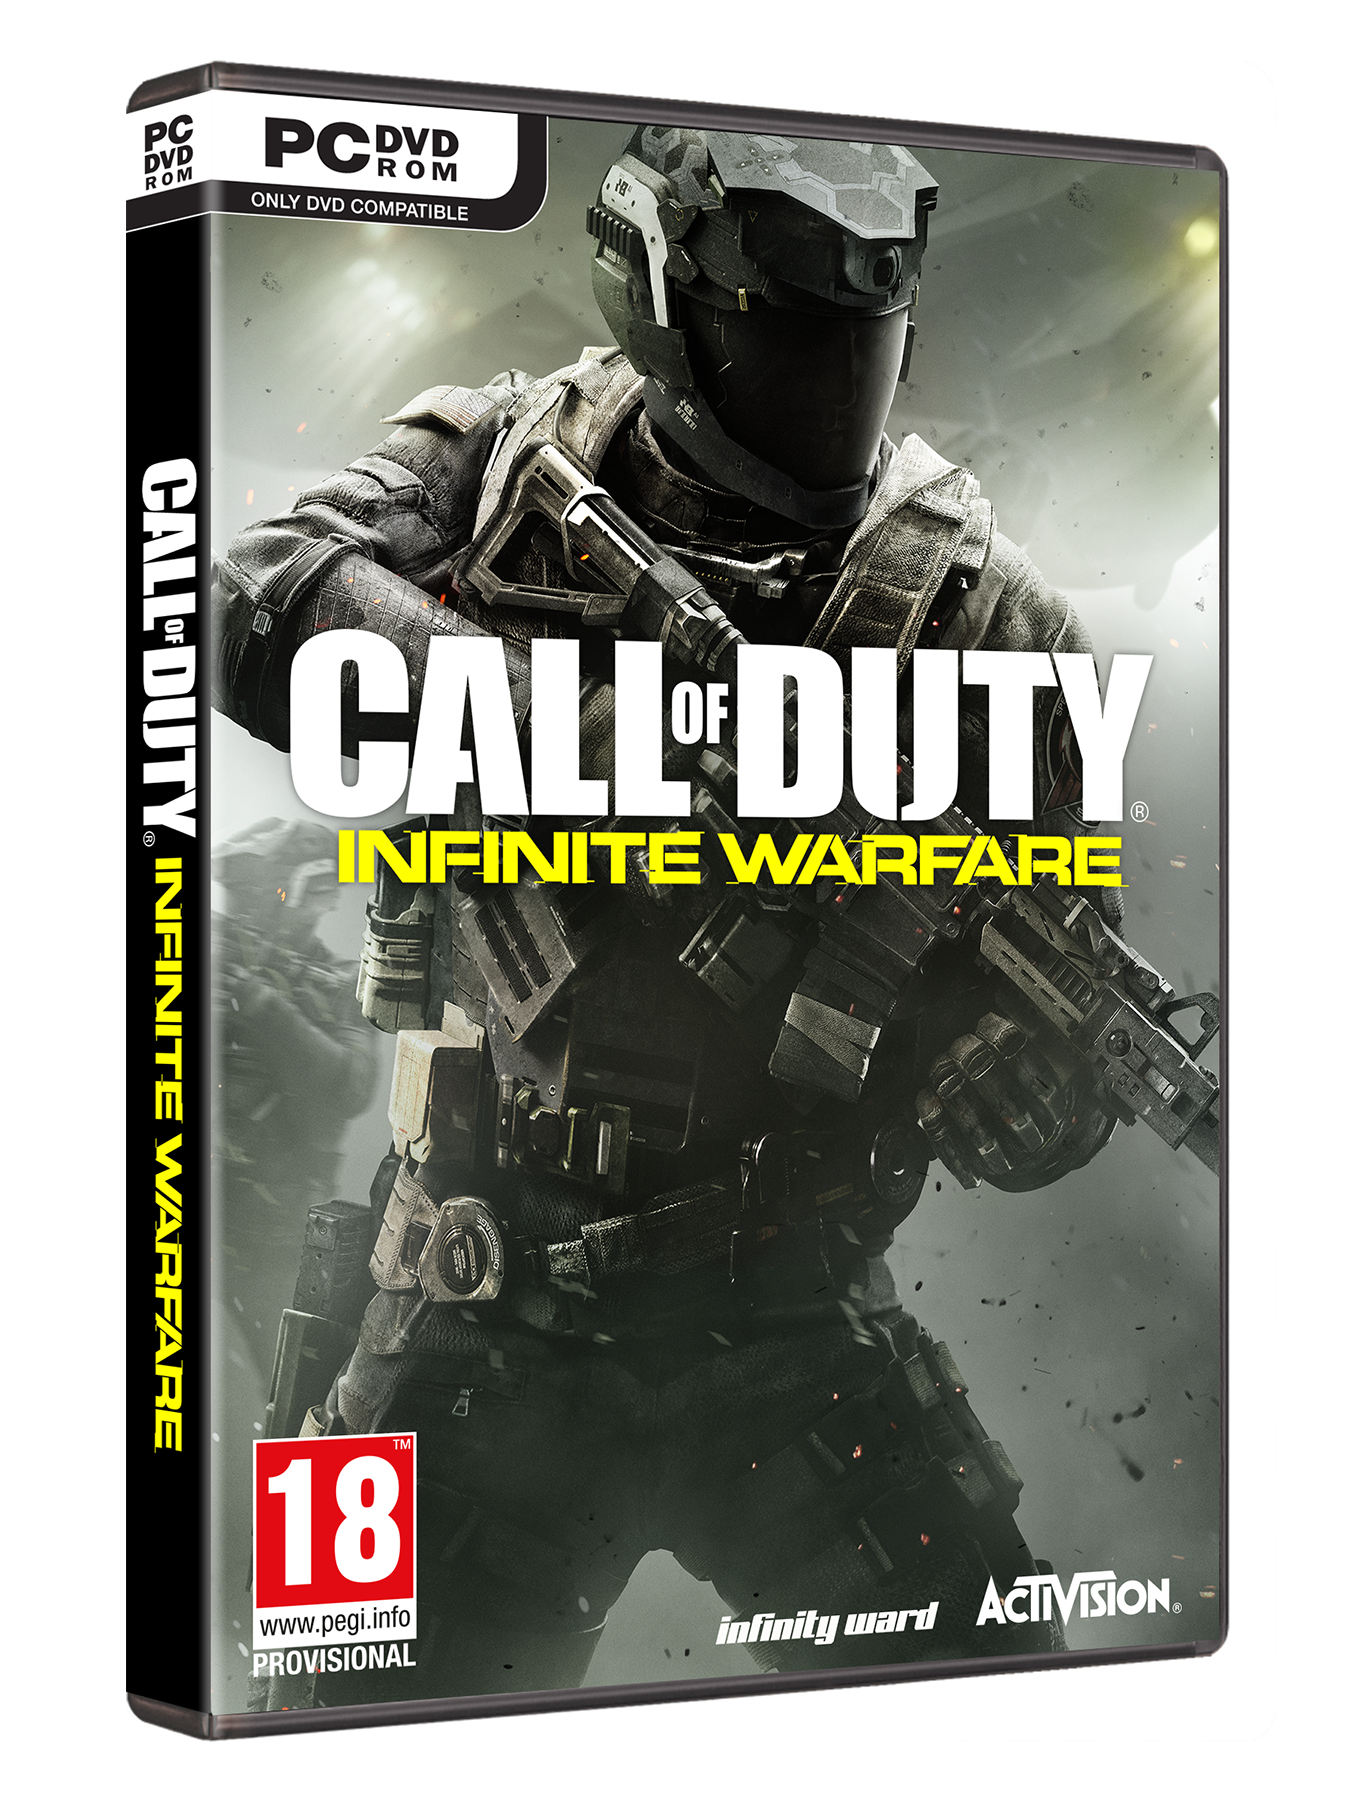 Call of Duty Infinite Warfare : Standard Edition for PC - Video Games by ACTIVISION The Chelsea Gamer